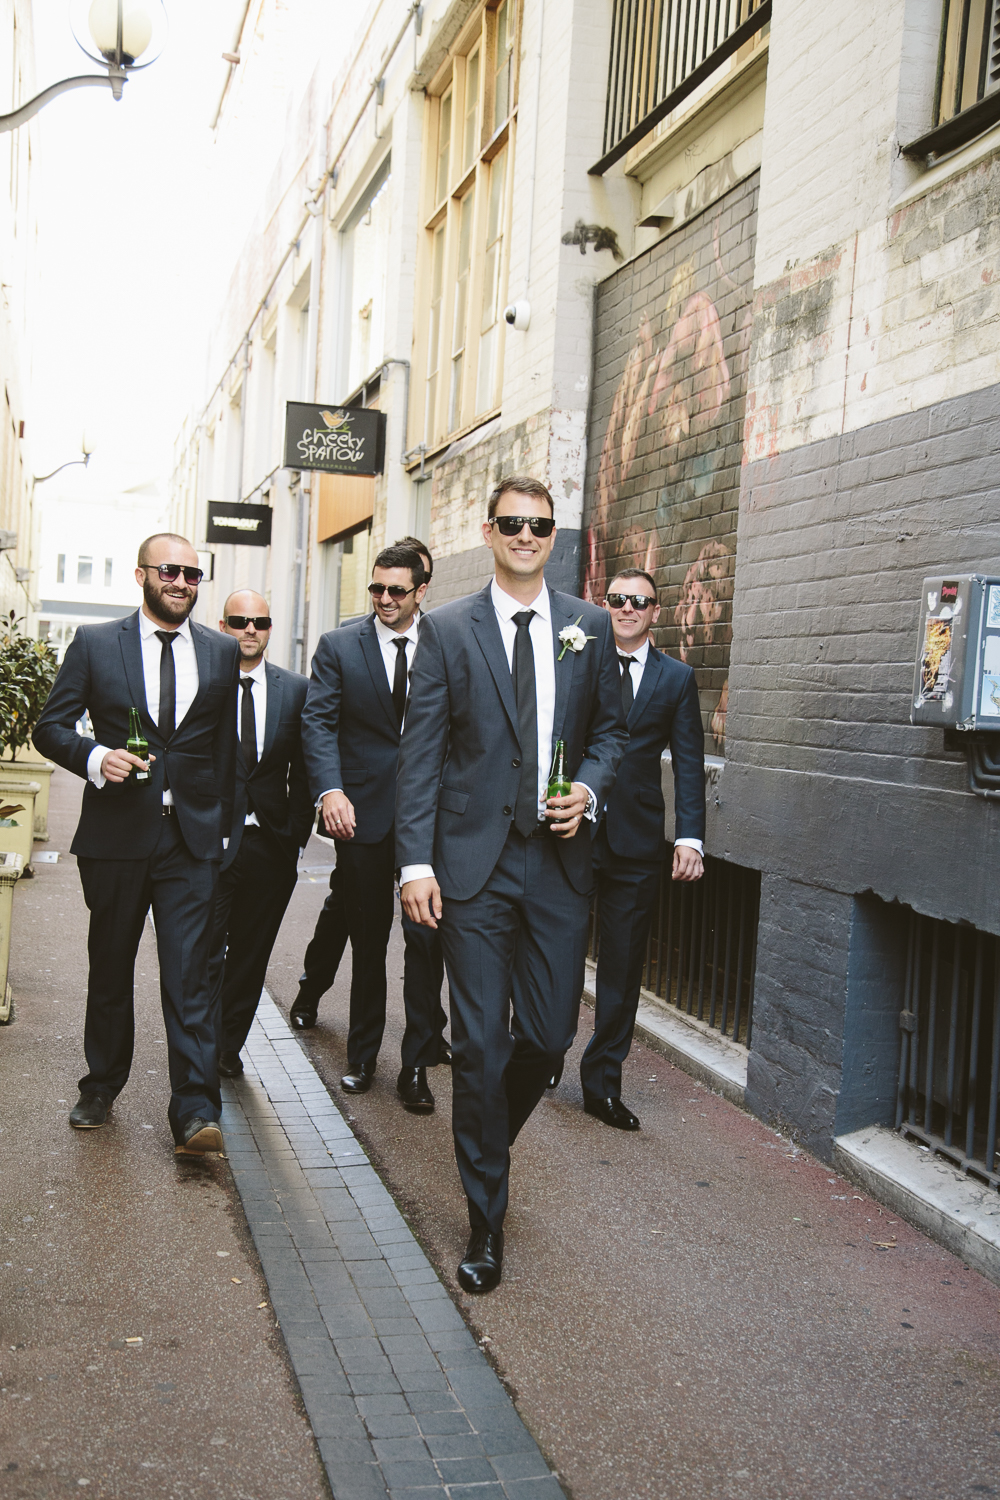 wolfe lane groomsmen portraits wedding